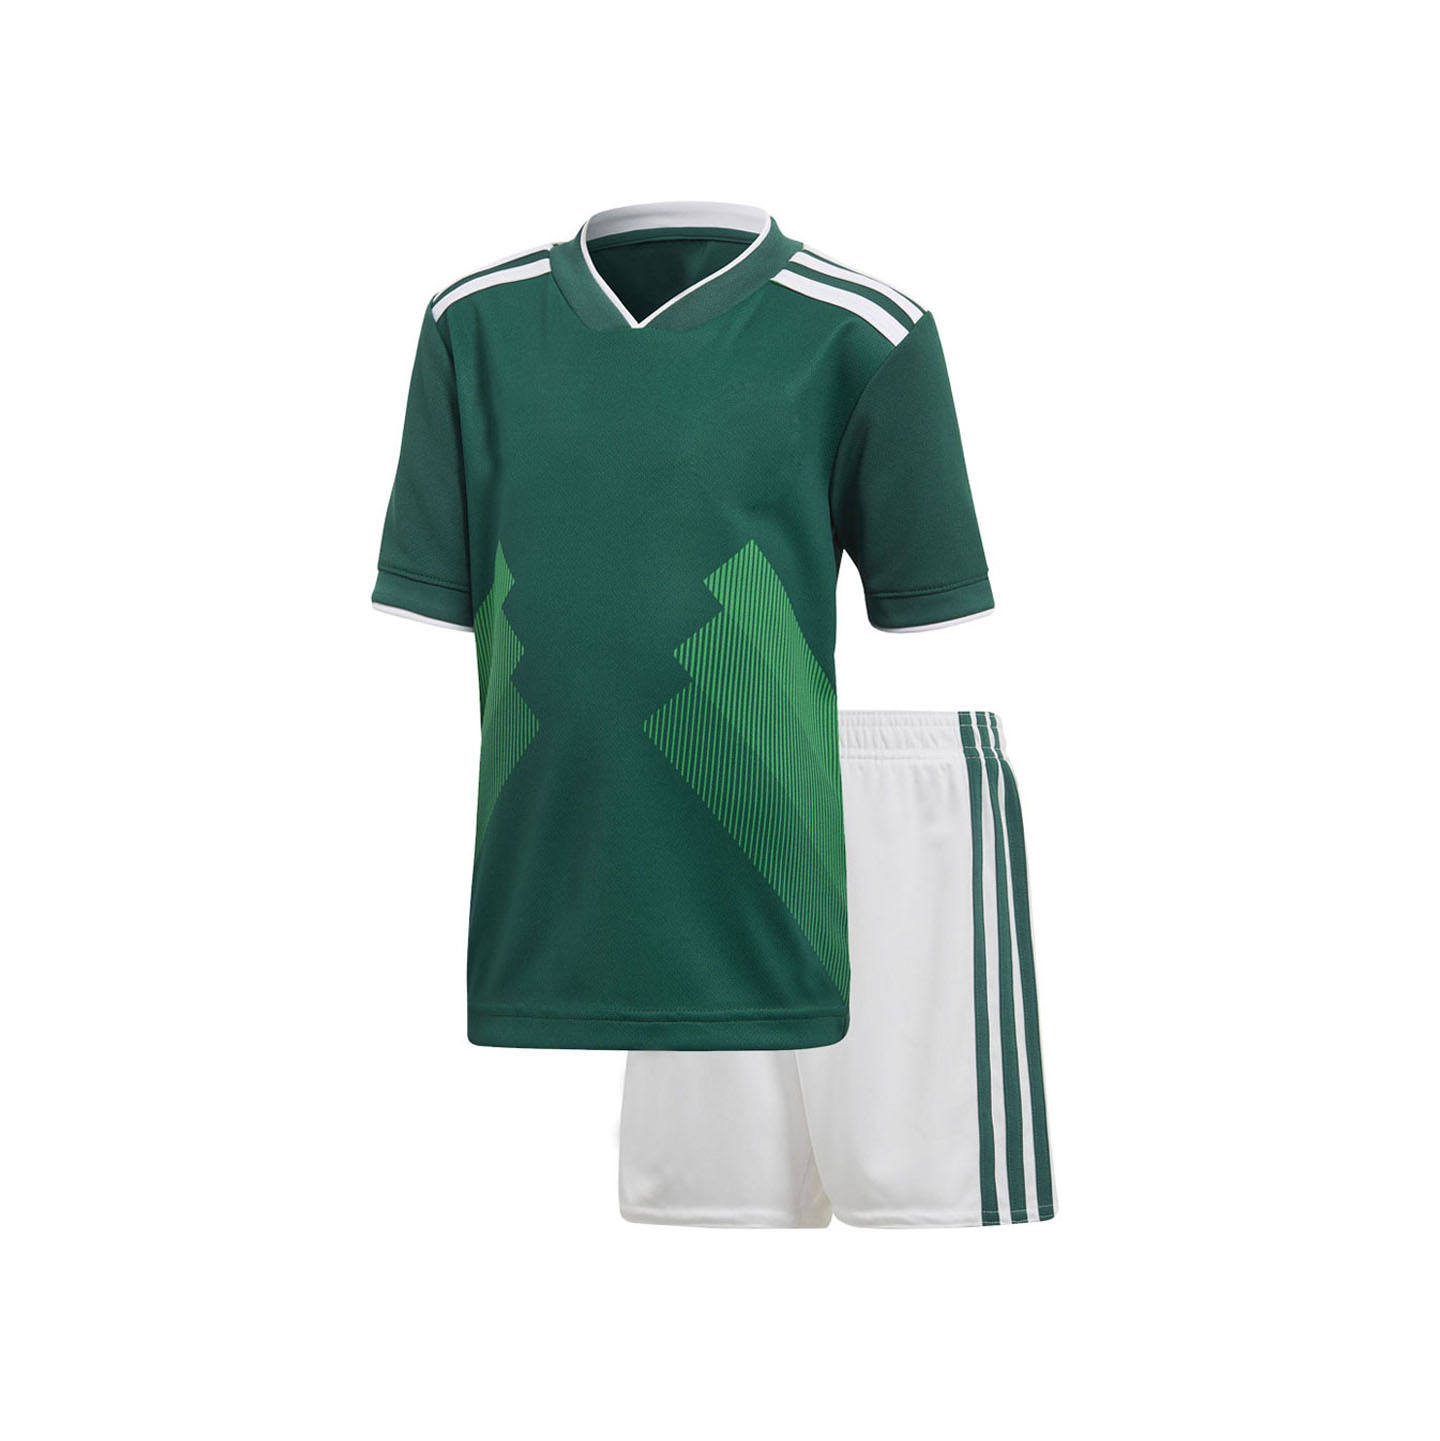 Sublimation customized custom printed soccer uniform for sale